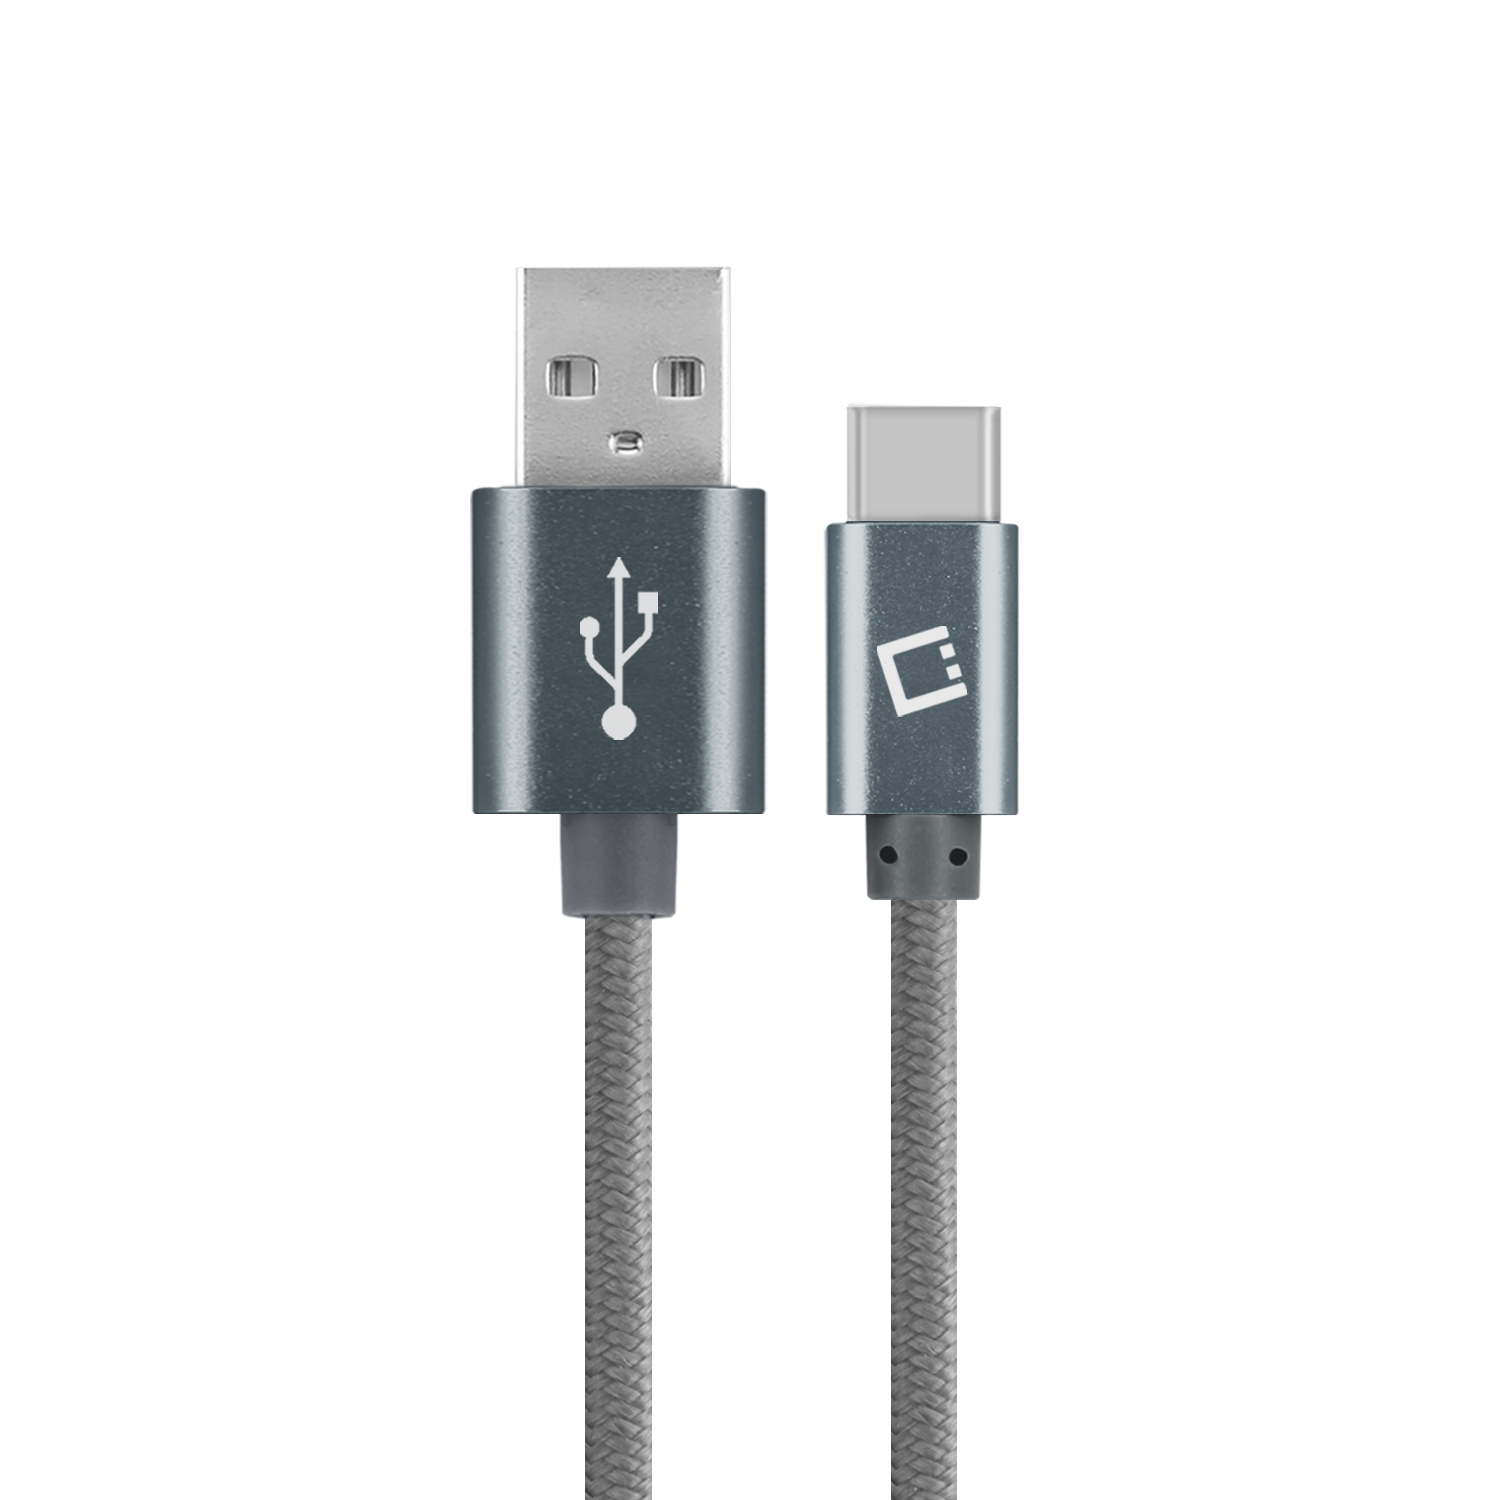 Google Pixel 2 XL USB Type-C To Type-A Braided Data Power Cable Grey 4ft Braided